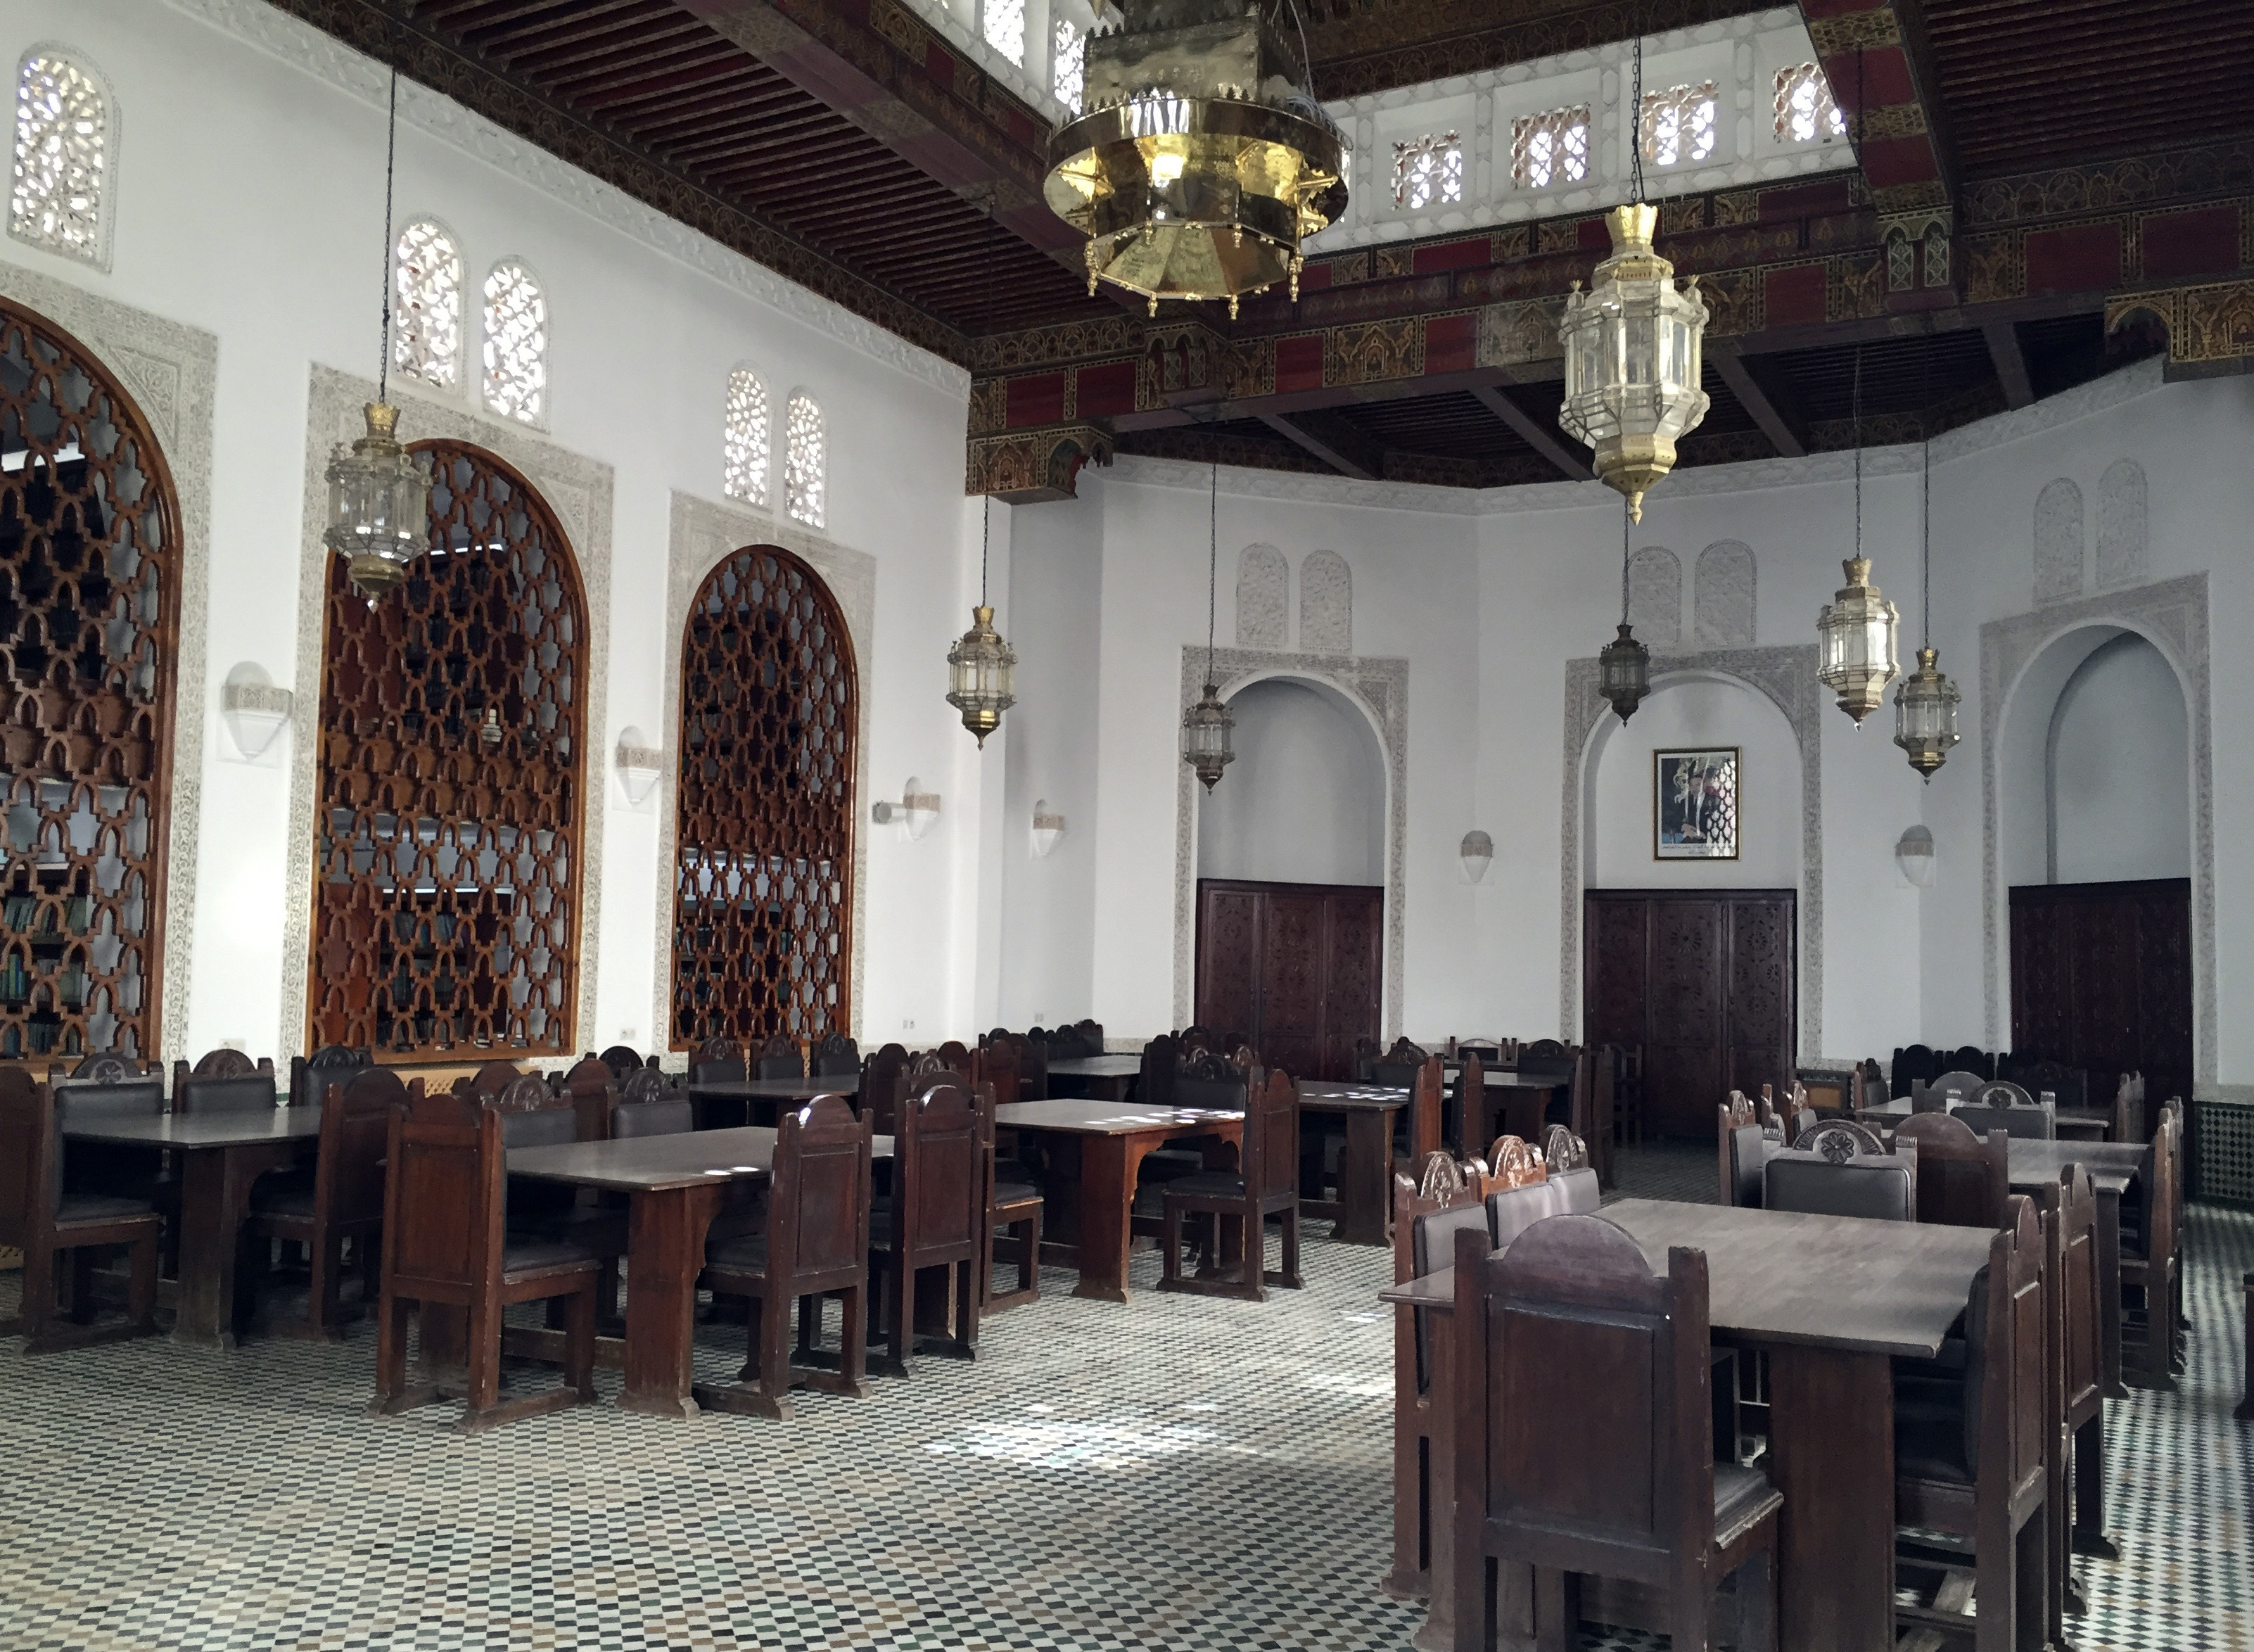 Slide 18 of 77: This April 14, 2016, photo shows the reading room of the Al-Qarawiyyin mosque in Fez, Morocco. Founded 12 centuries ago by a pioneering woman, the al-Qarawiyyin library is wrapping up a careful restoration project and King Mohamed VI is expected to preside over the reopening. But authorities haven't decided whether the public will be able to view its treasured Islamic manuscripts, or whether that privilege will be limited to university researchers. (AP Photo/Samia Errazouki)